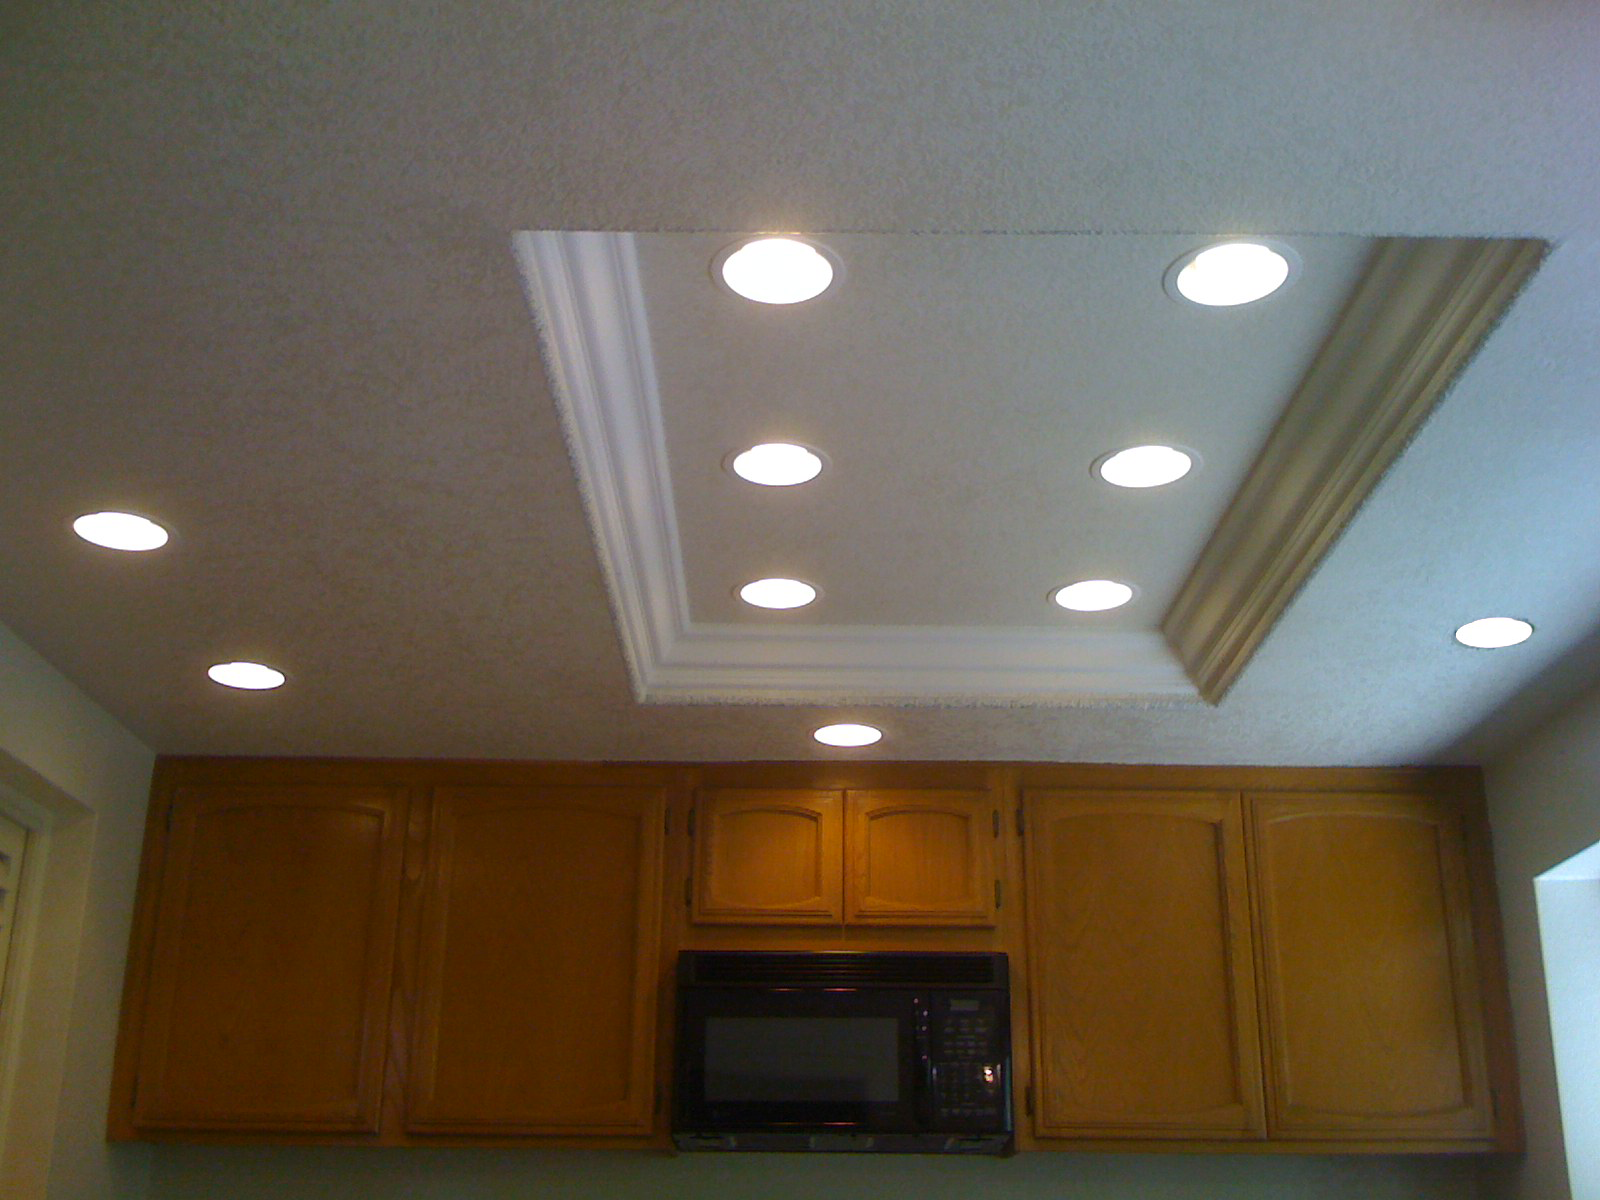 Good Idea For Replacing Fluorescent Light With Recessed